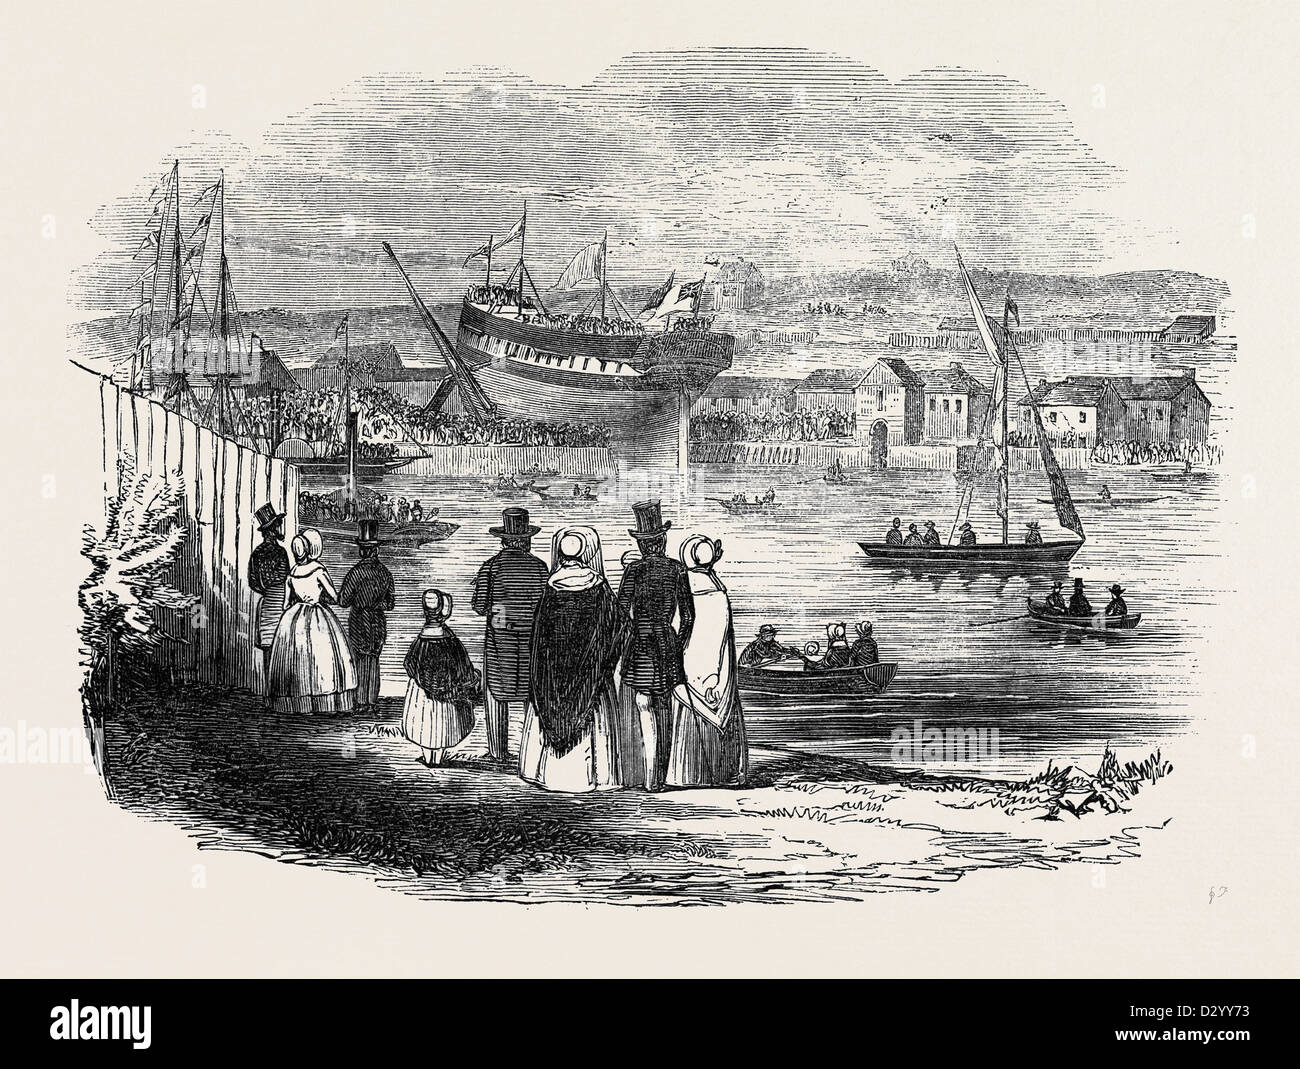 THE LAUNCH OF 'THE TUDOR,' EAST INDIAMAN, AT NEWCASTLE UPON TYNE - Stock Image